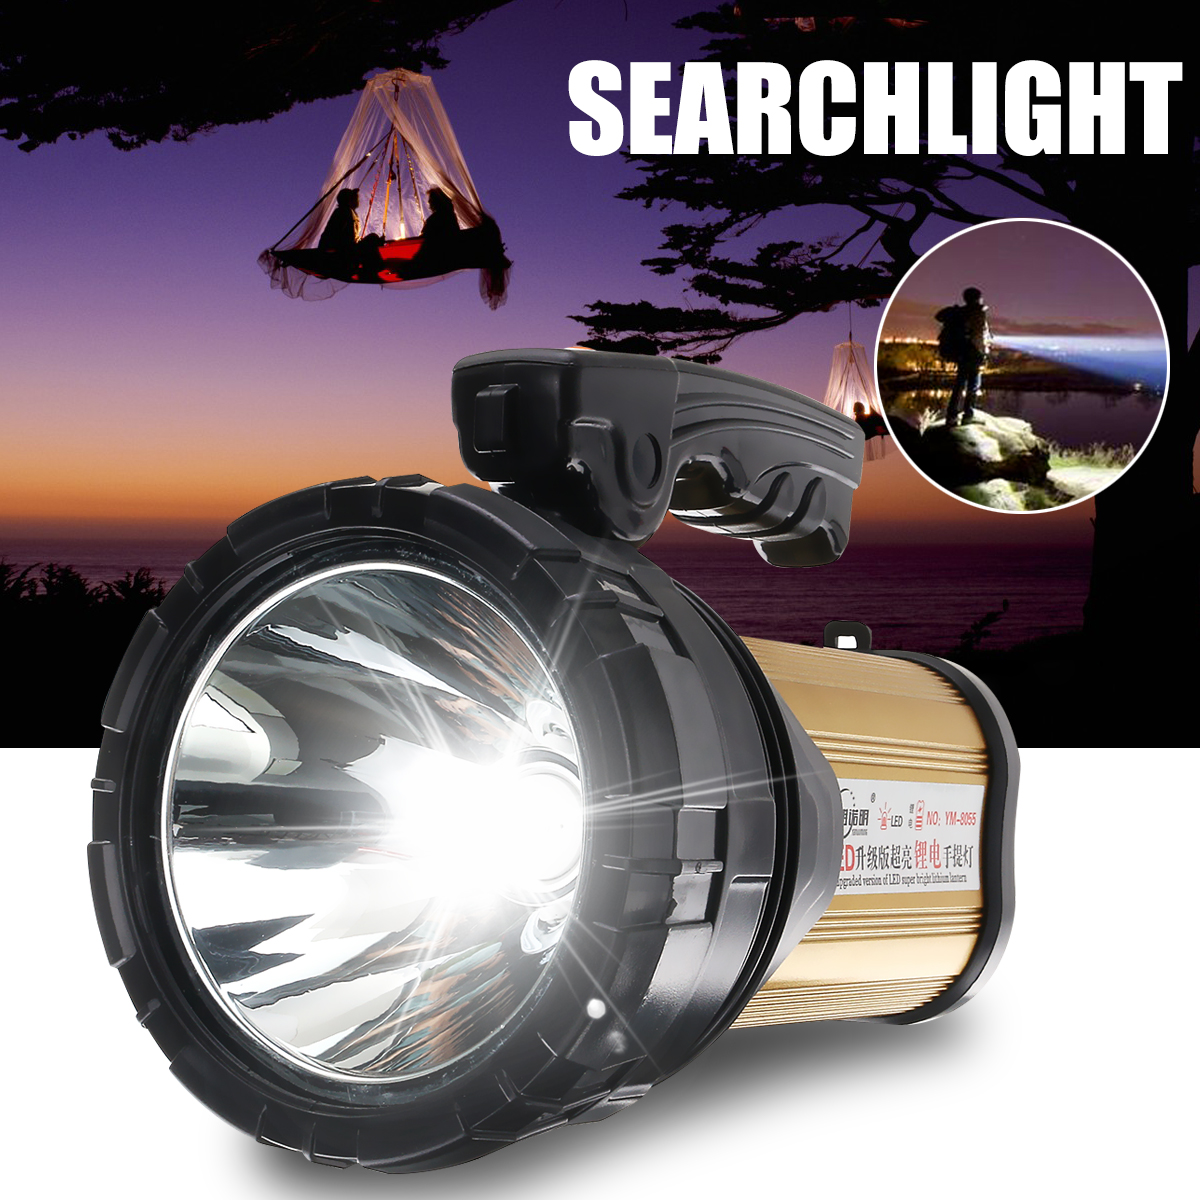 120W Super Bright Searchlight Outdoor Handheld Portable Spotlight LED Rechargeable Flashlight USB Searchlight Long Shots Lamp portable flashlight torch light led rechargeable searchlight 30w long range bright spotlight for hunting and camp